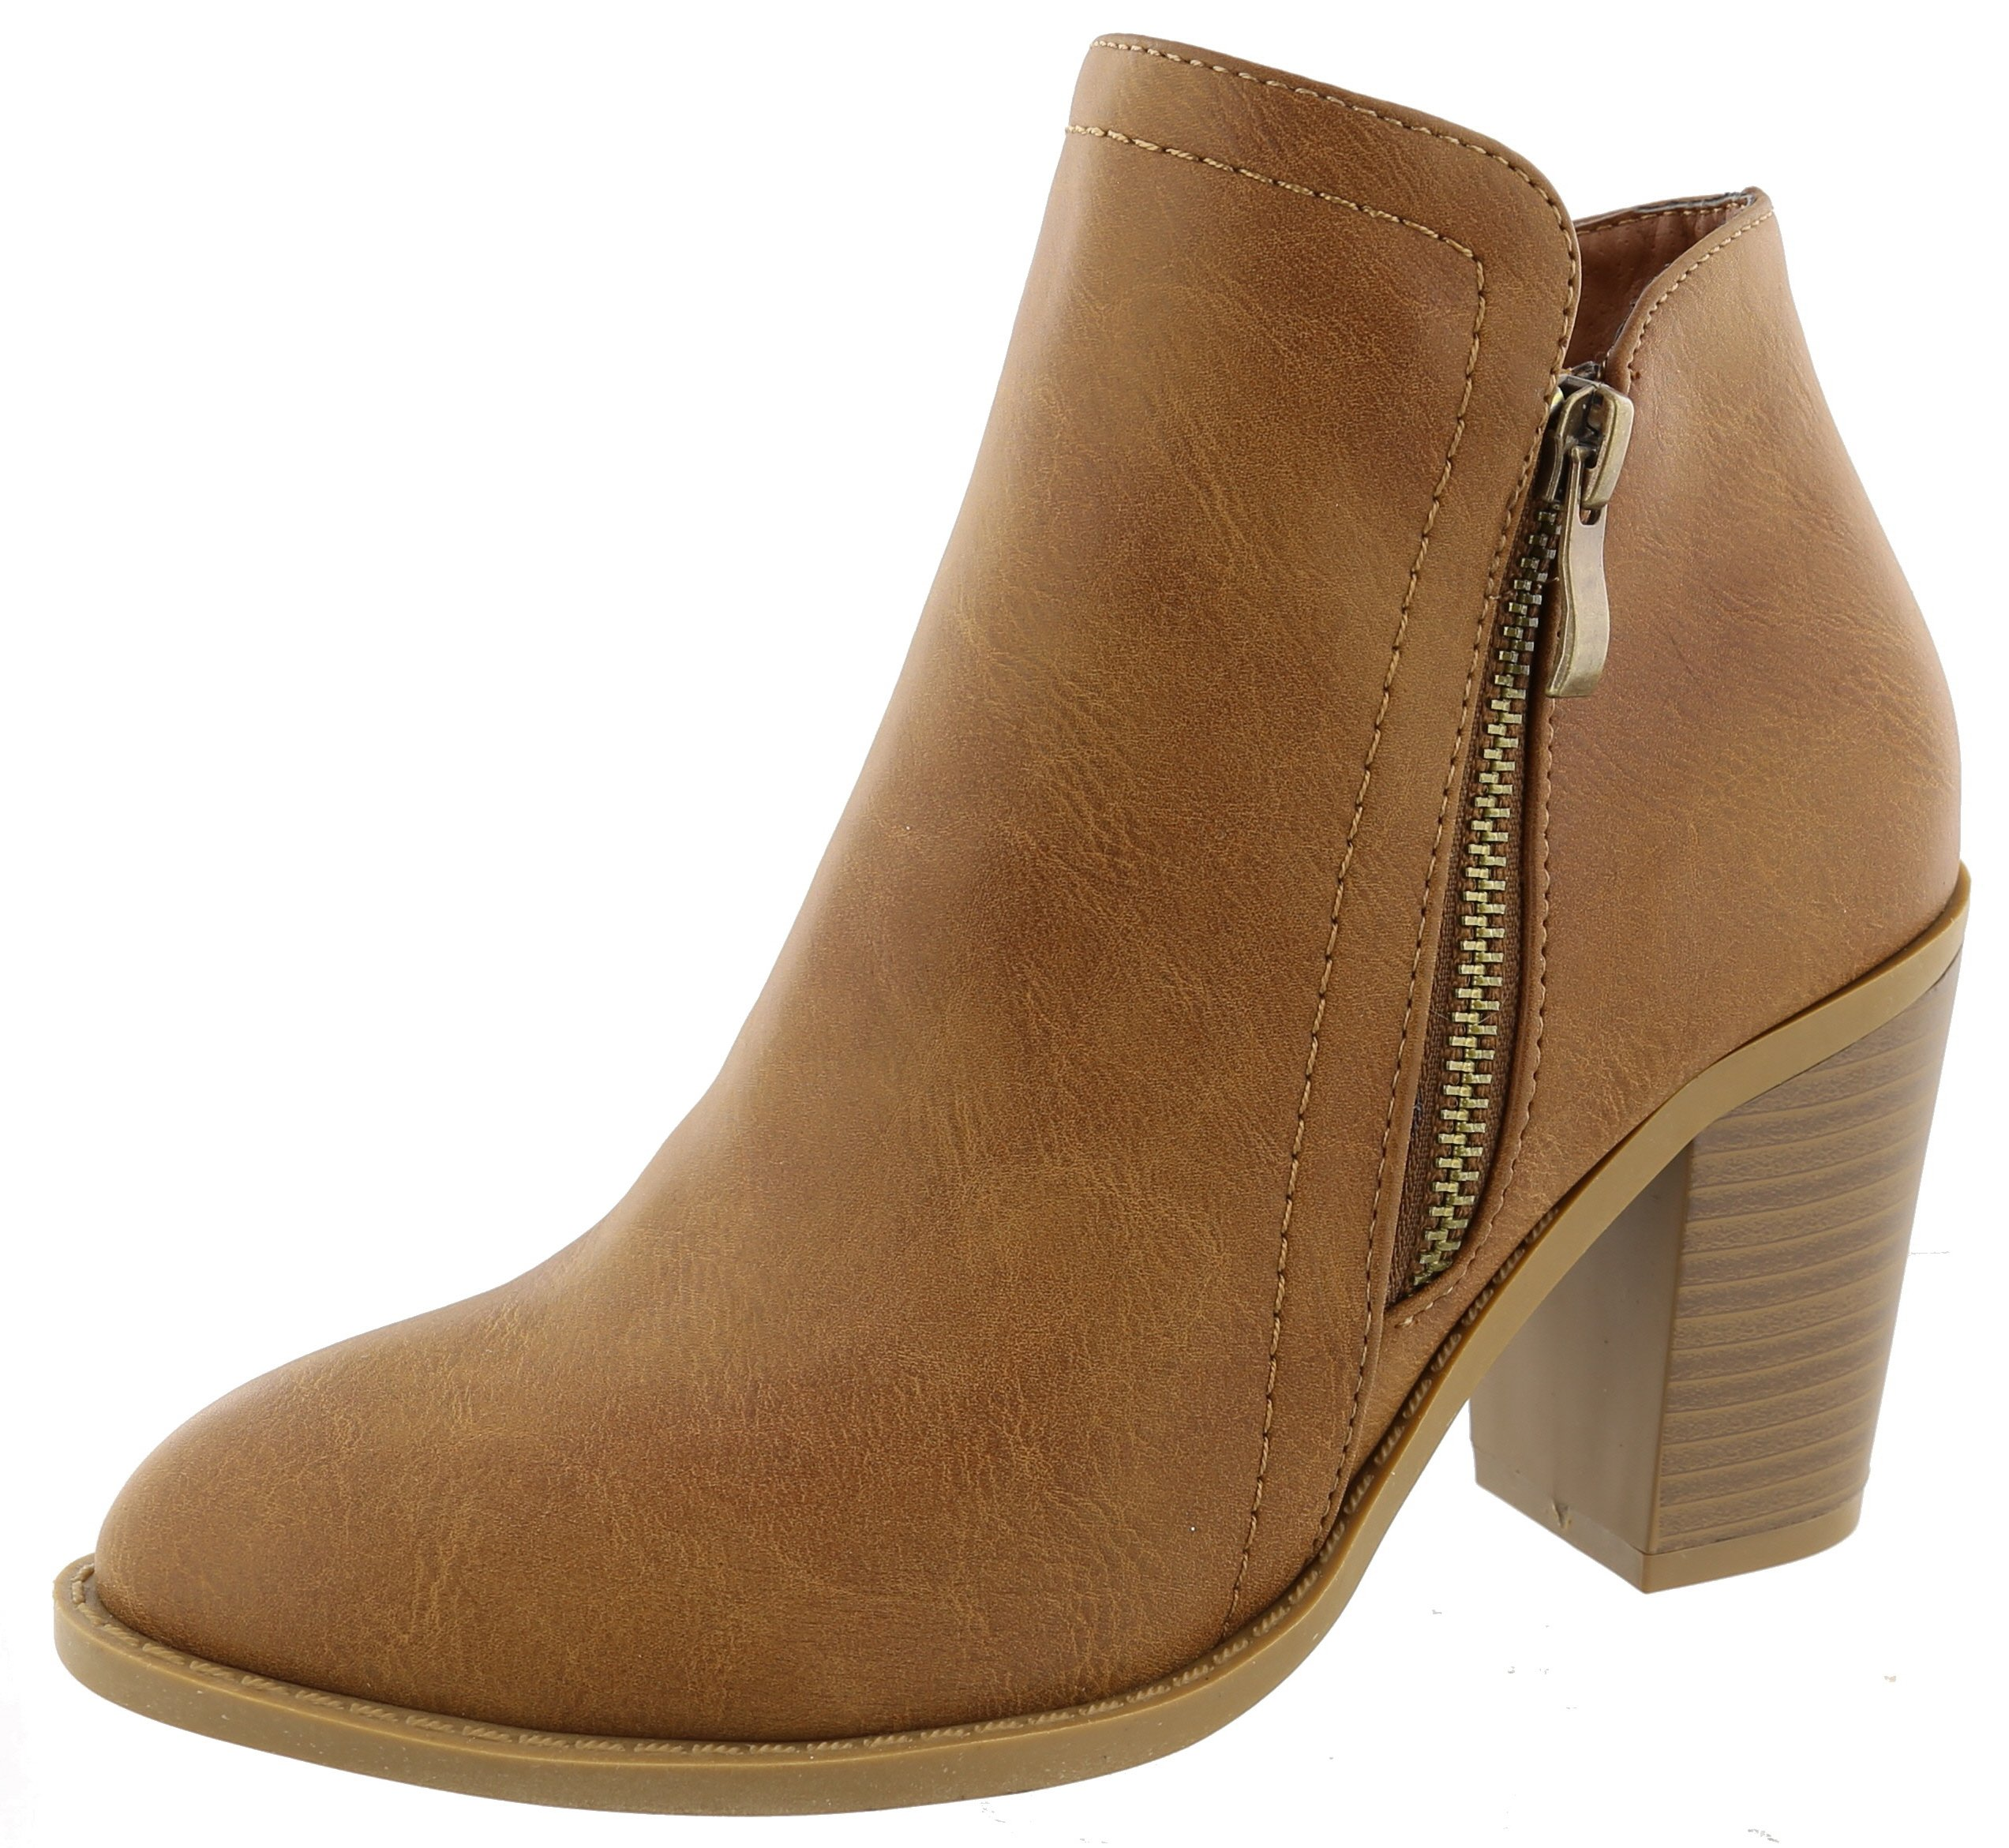 Top Moda Women's Closed Round Toe Zipper Chunky Stacked Block Heel Ankle Bootie (7.5 B(M) US, Tan)